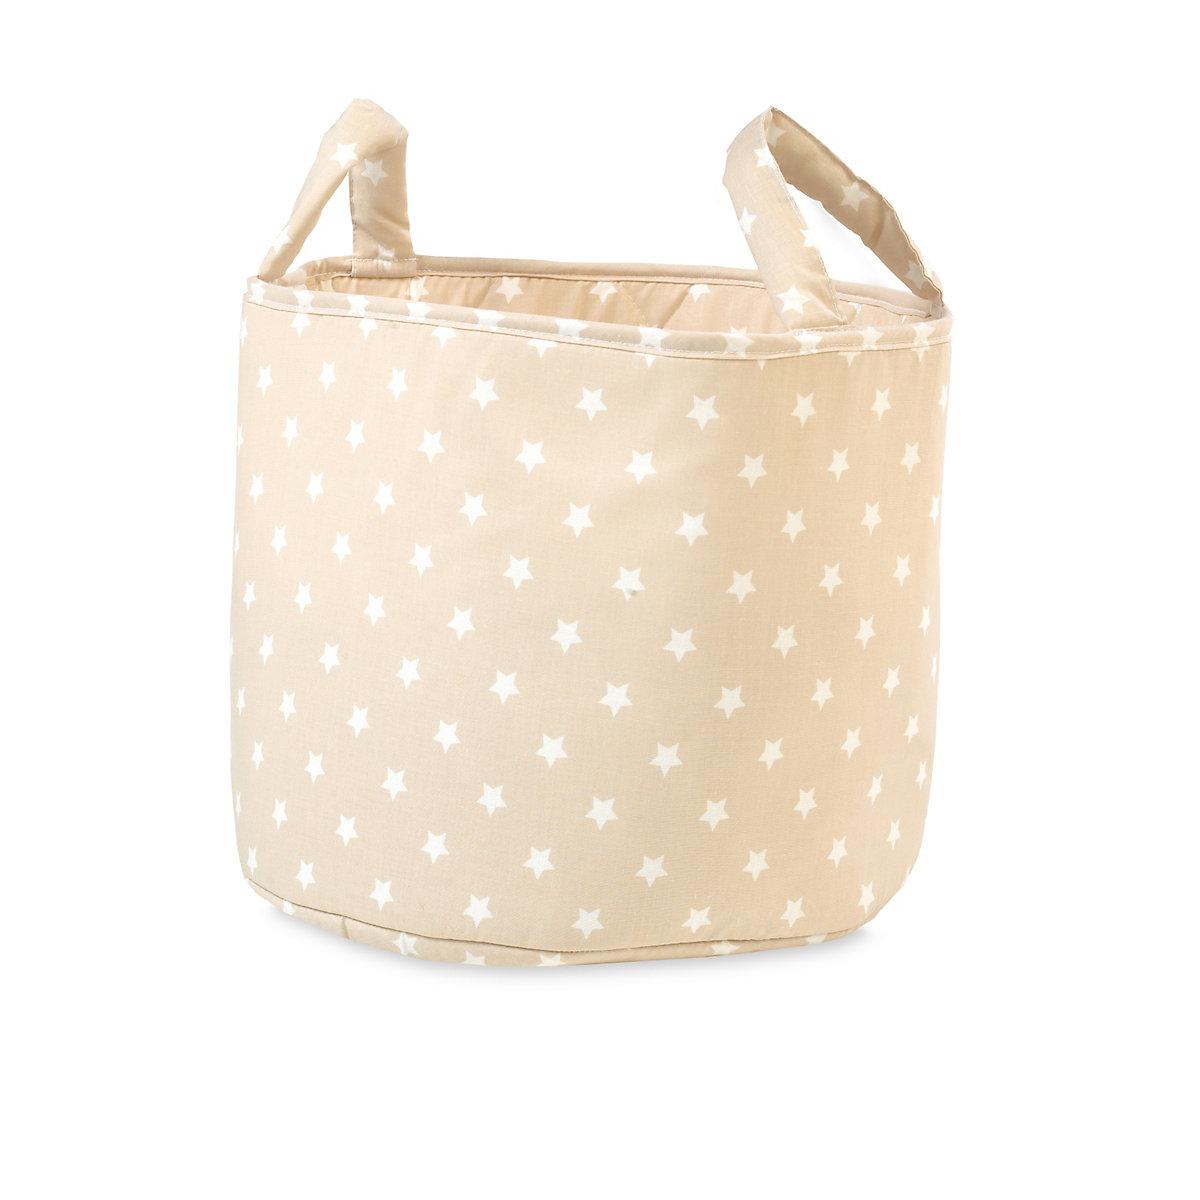 Mothercare Fabric Storage Basket- Beige Stars